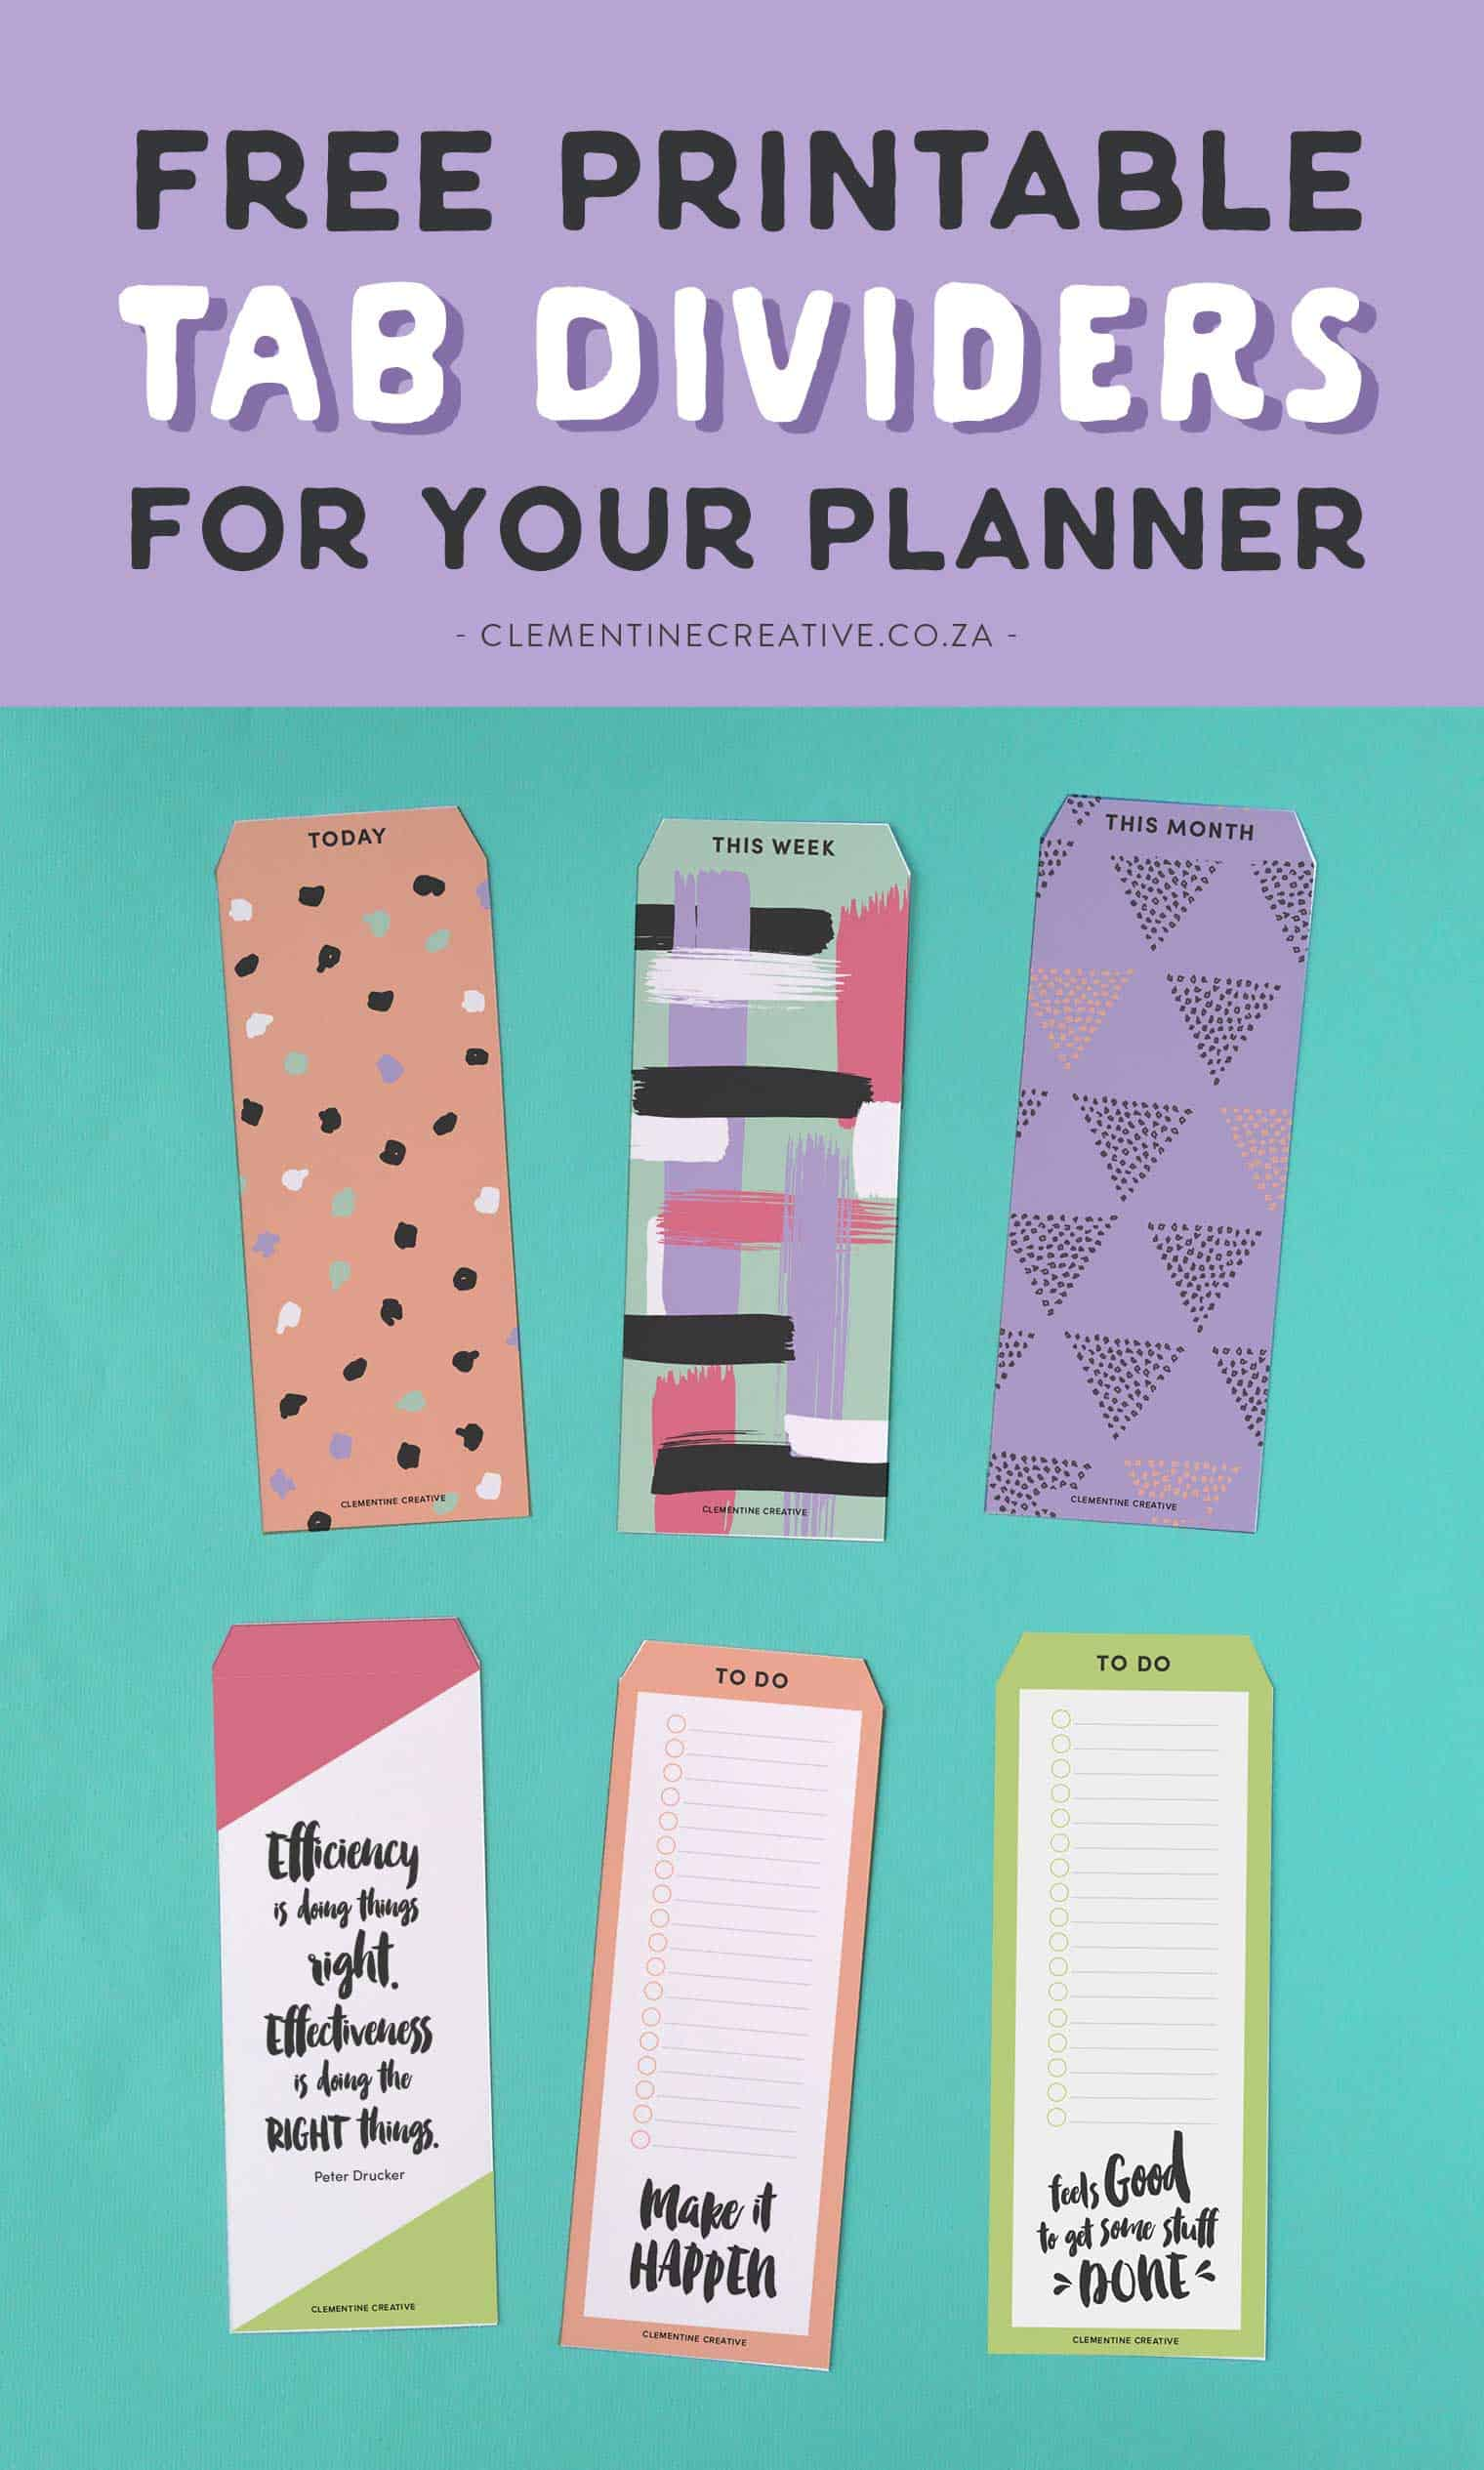 image regarding Free Printable Bible Tabs named Cost-free Printable Supreme Tab Dividers for Planners, Diaries and